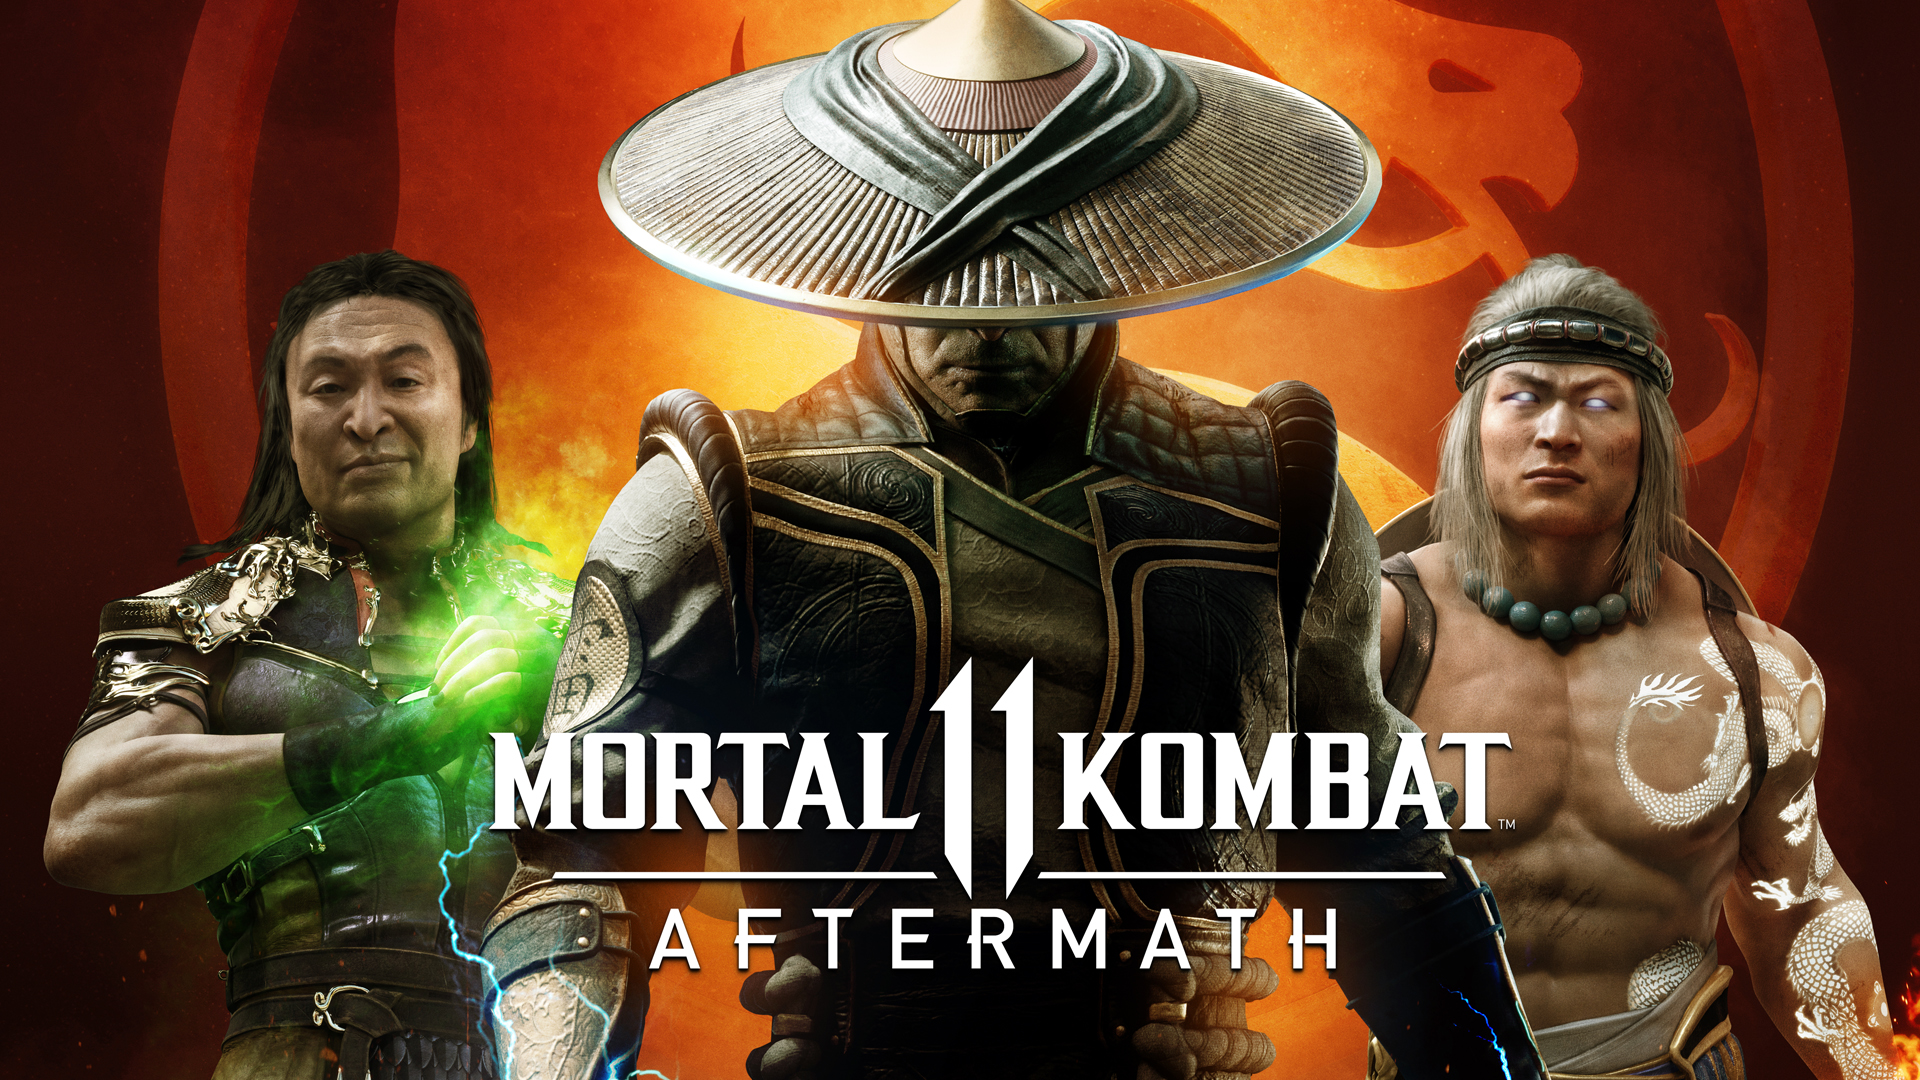 Amazon Lists Physical Mortal Kombat 11 Aftermath Kollection With